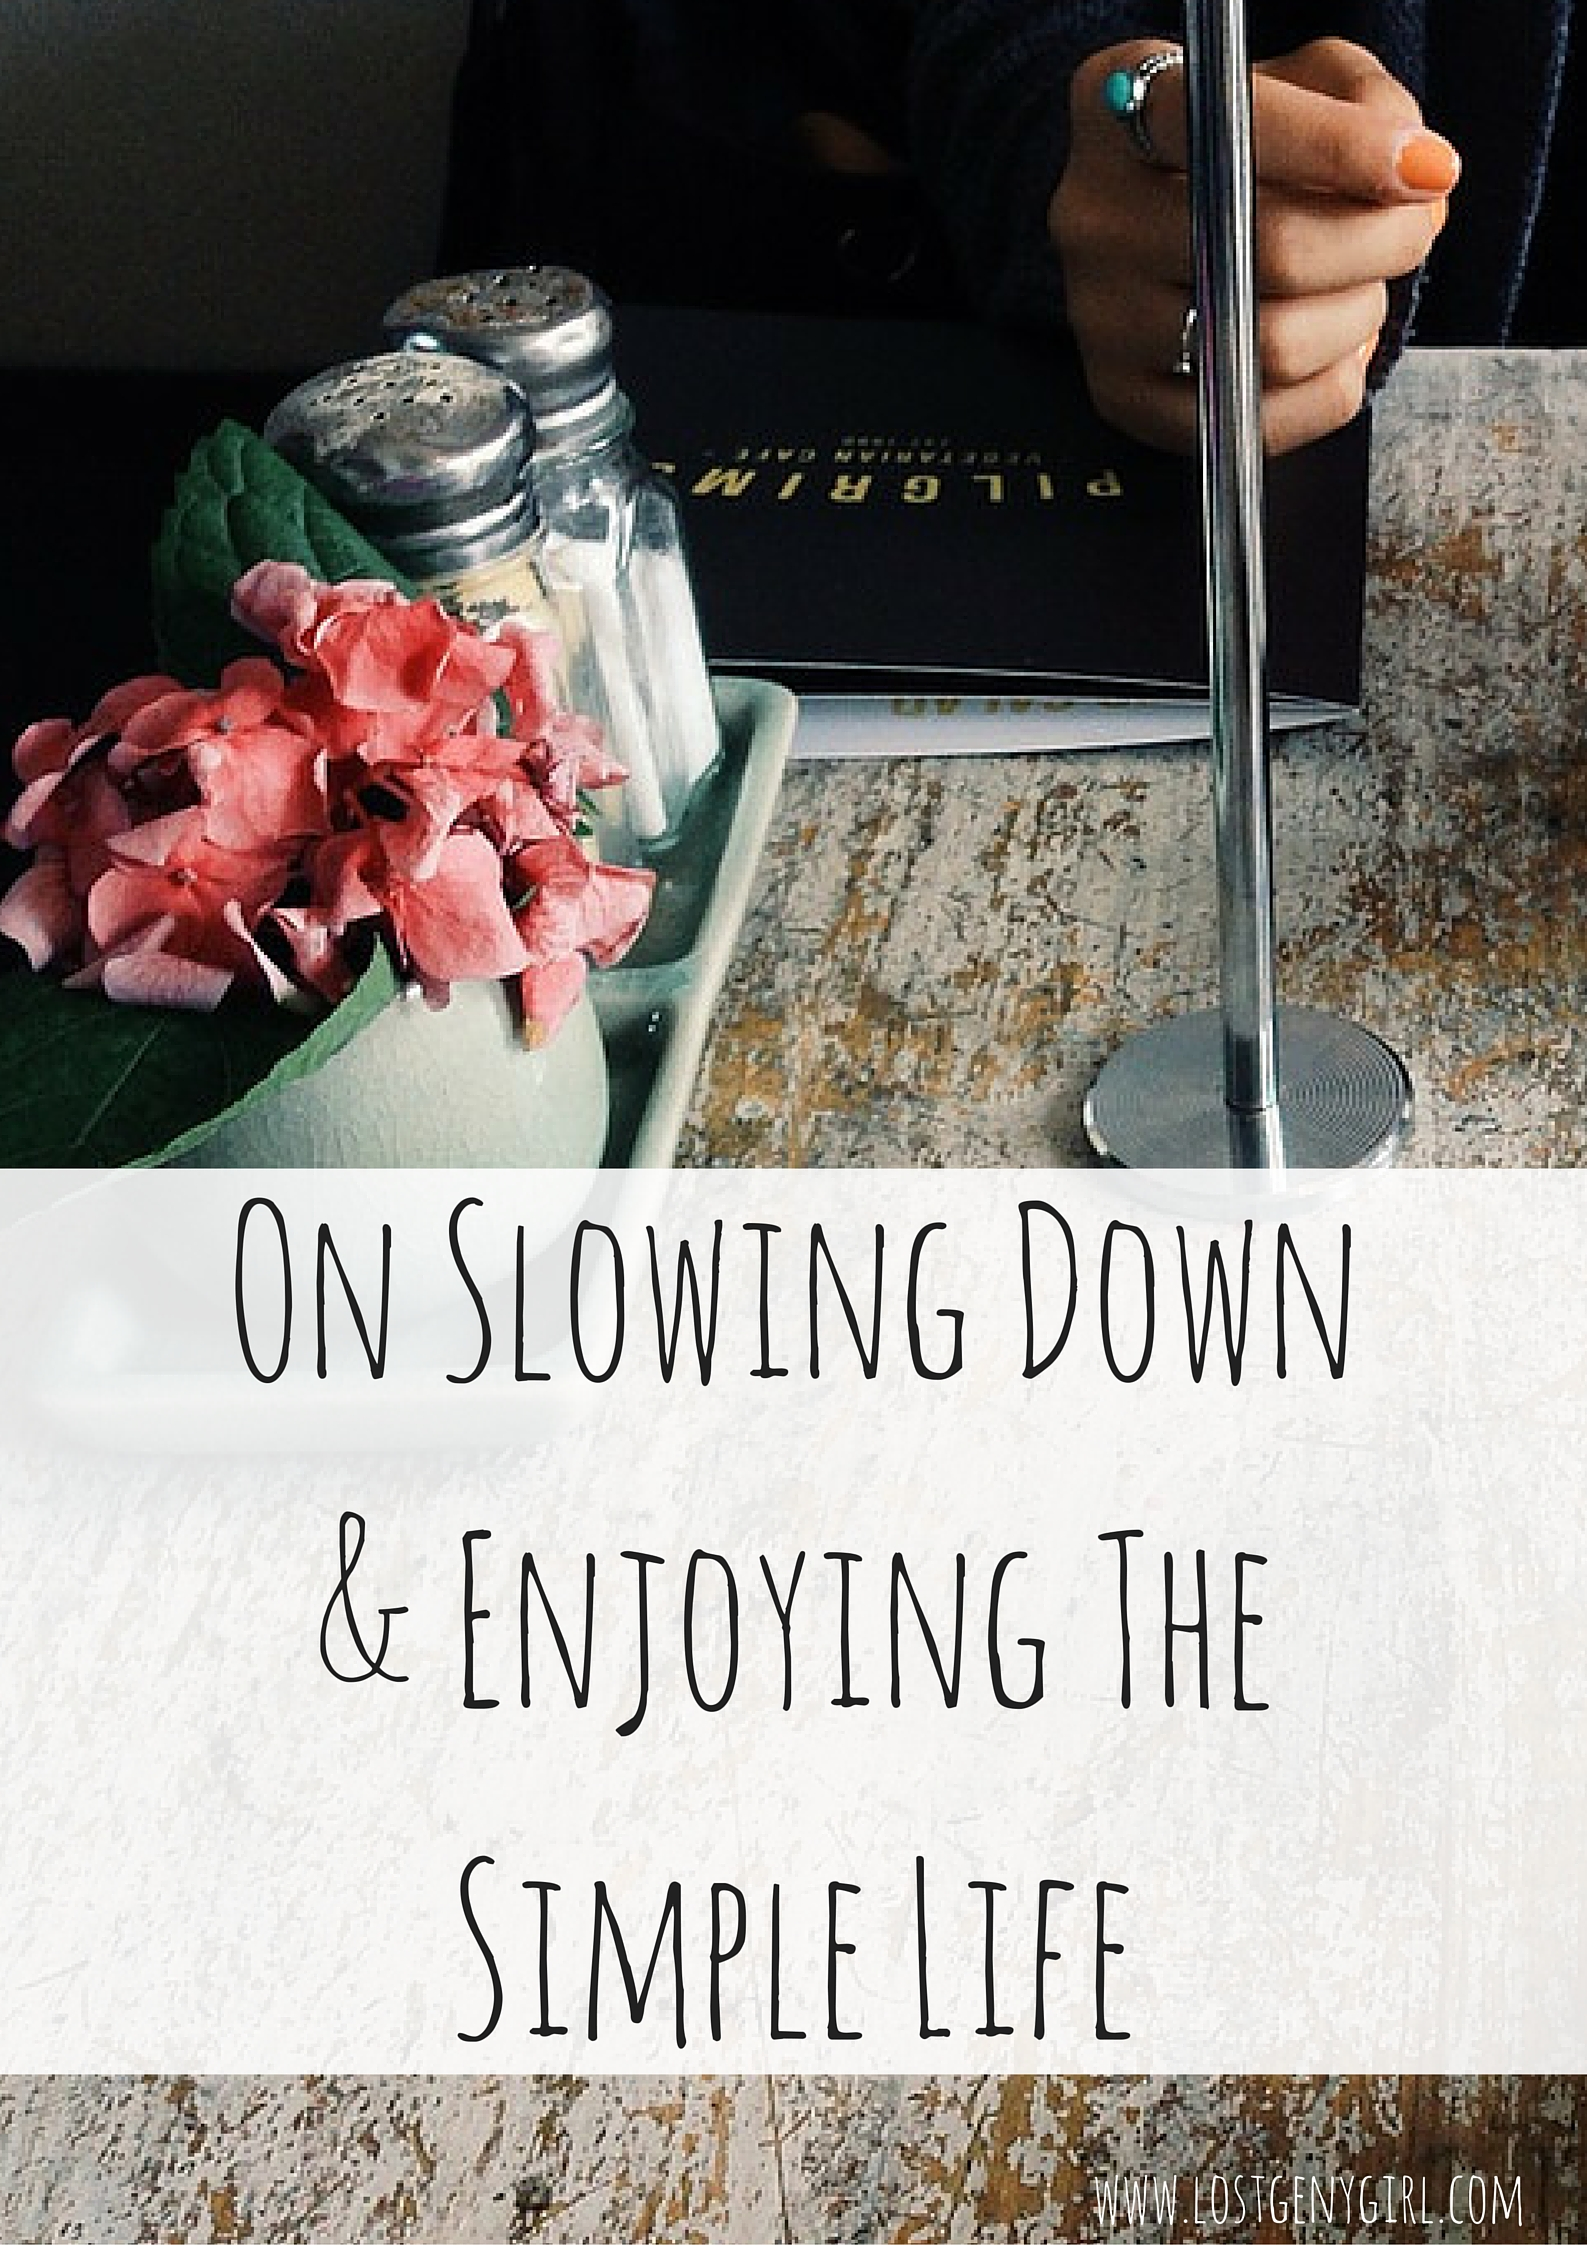 On Slowing Down And Enjoying The Simple Life